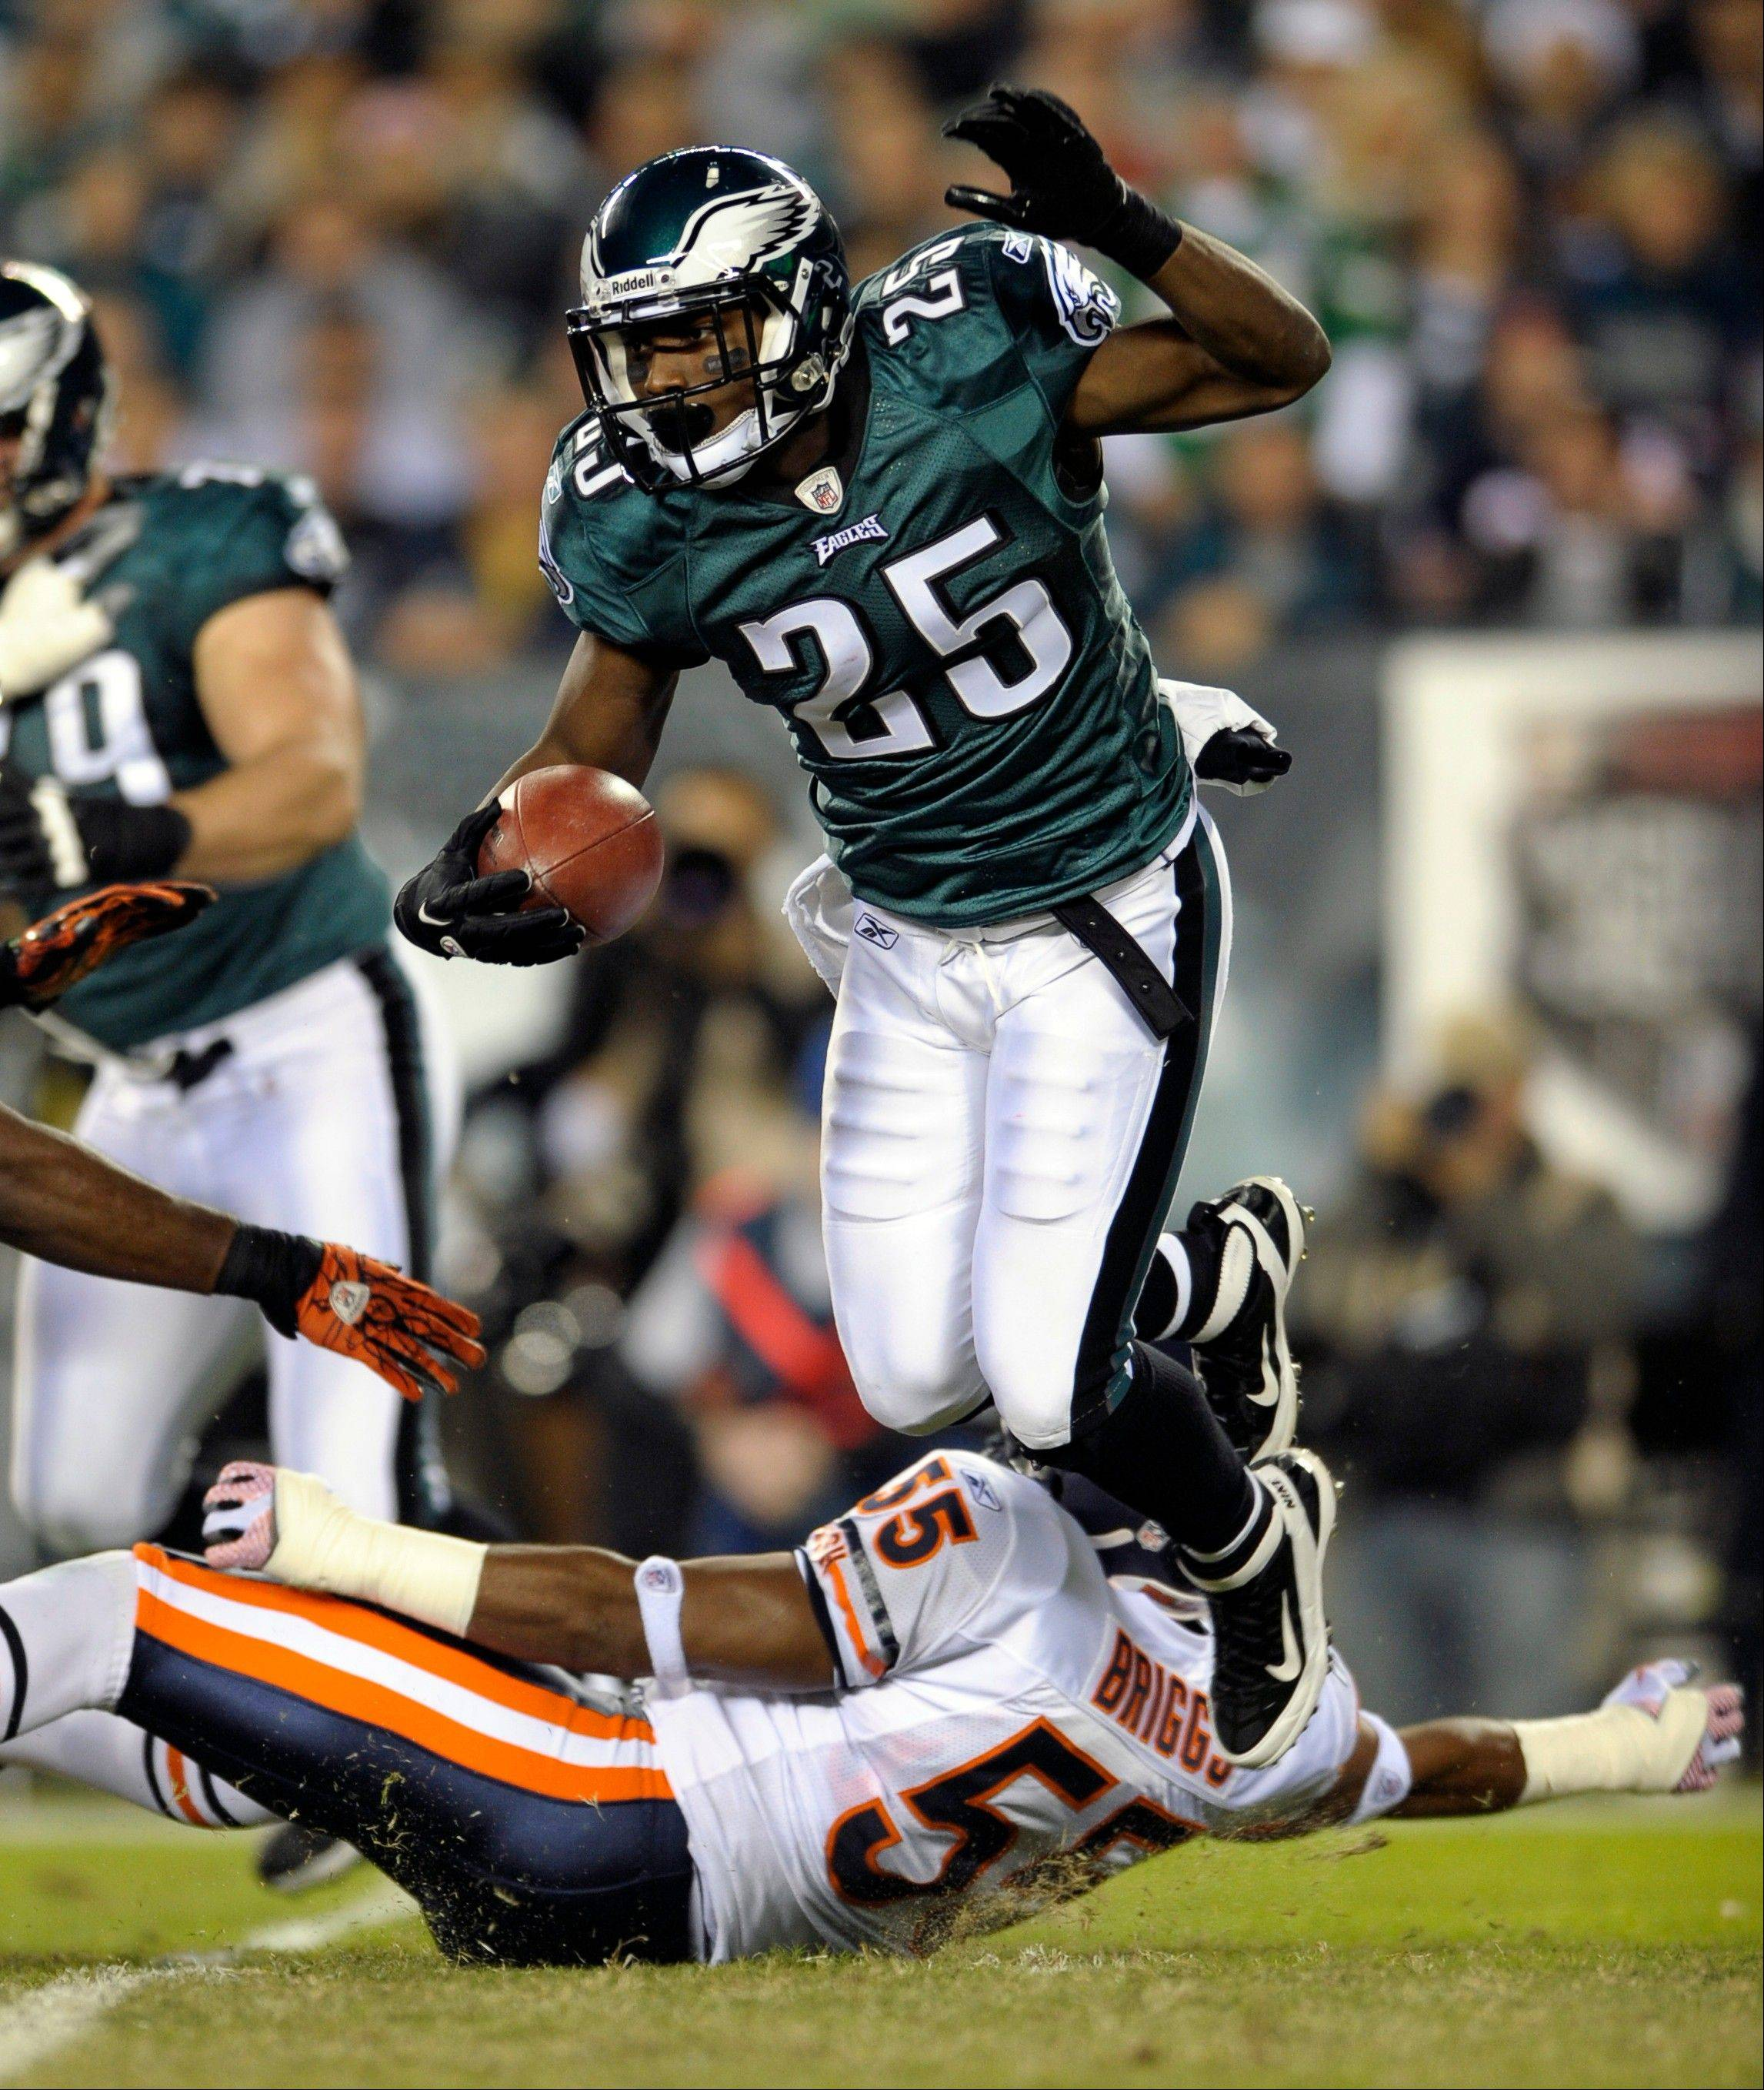 Eagles running back LeSean McCoy jumps over the Bears� Lance Briggs in a game in 2011. McCoy is ranked fifth among running backs for fantasy football purposes, according to John Dietz.